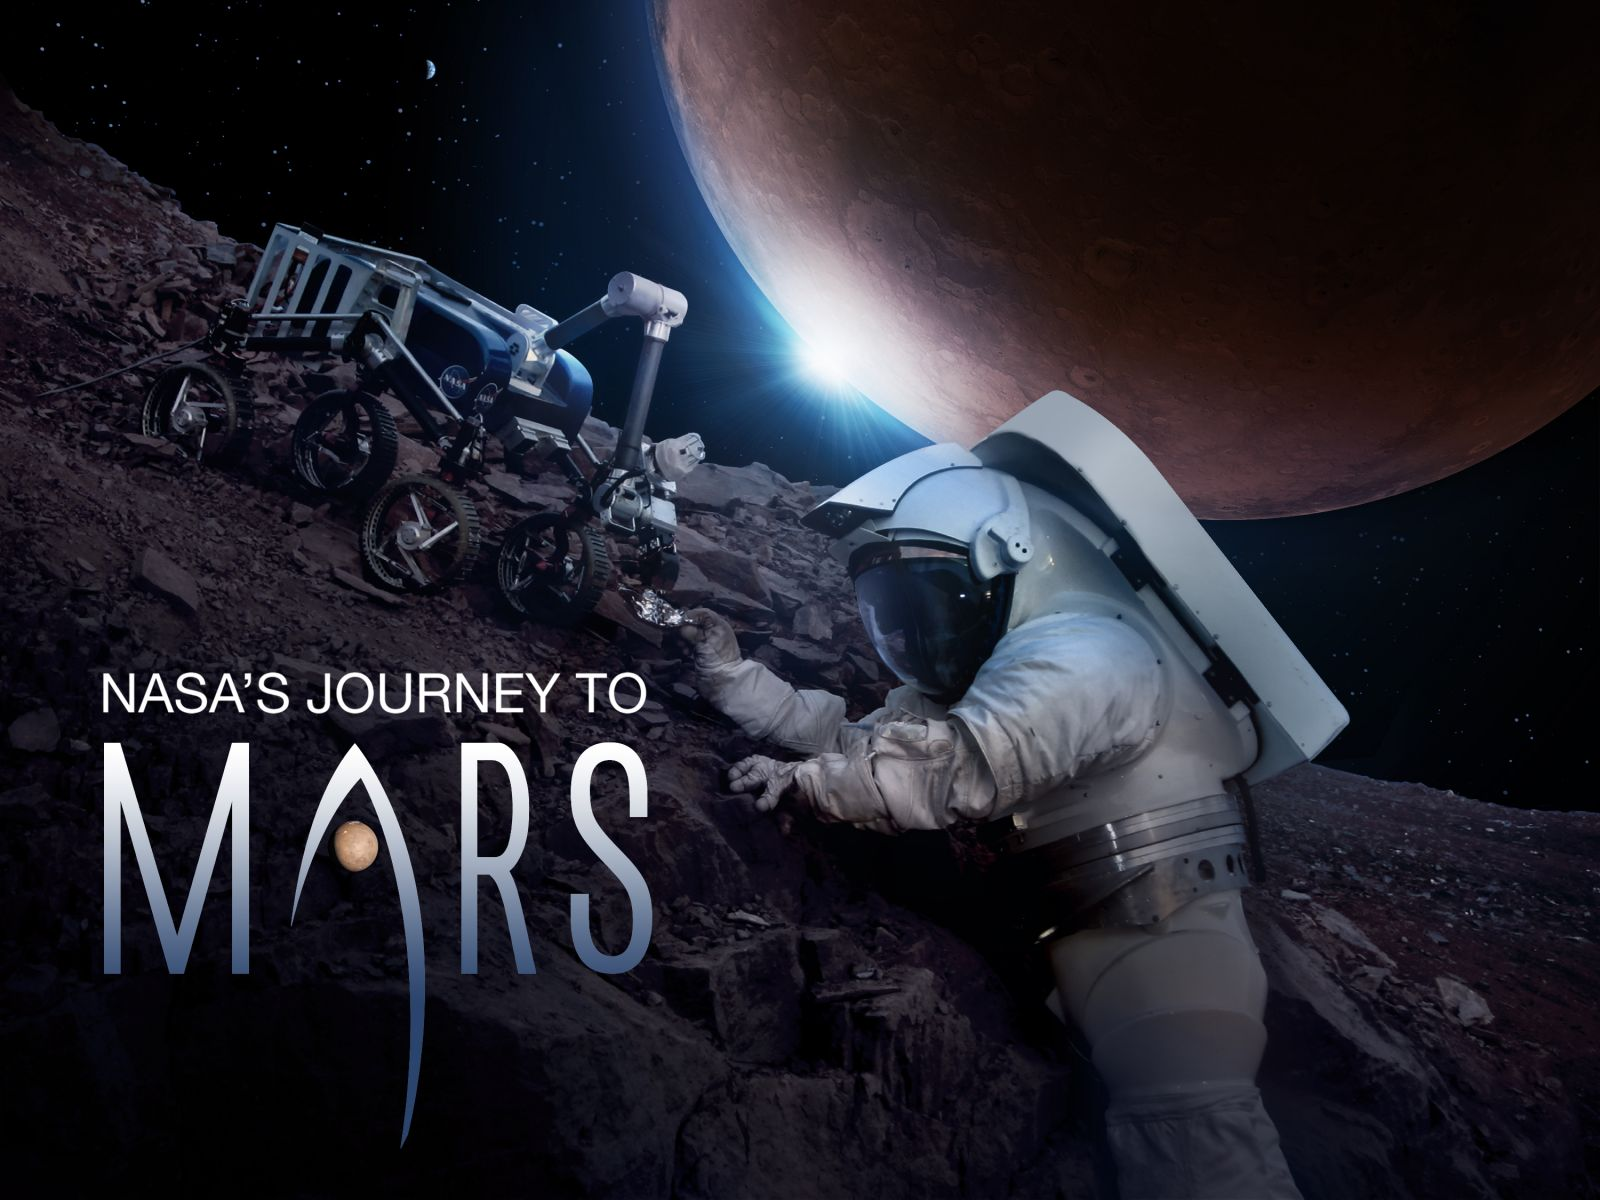 The Journey to Mars has a price tag, and it will give Congress ...